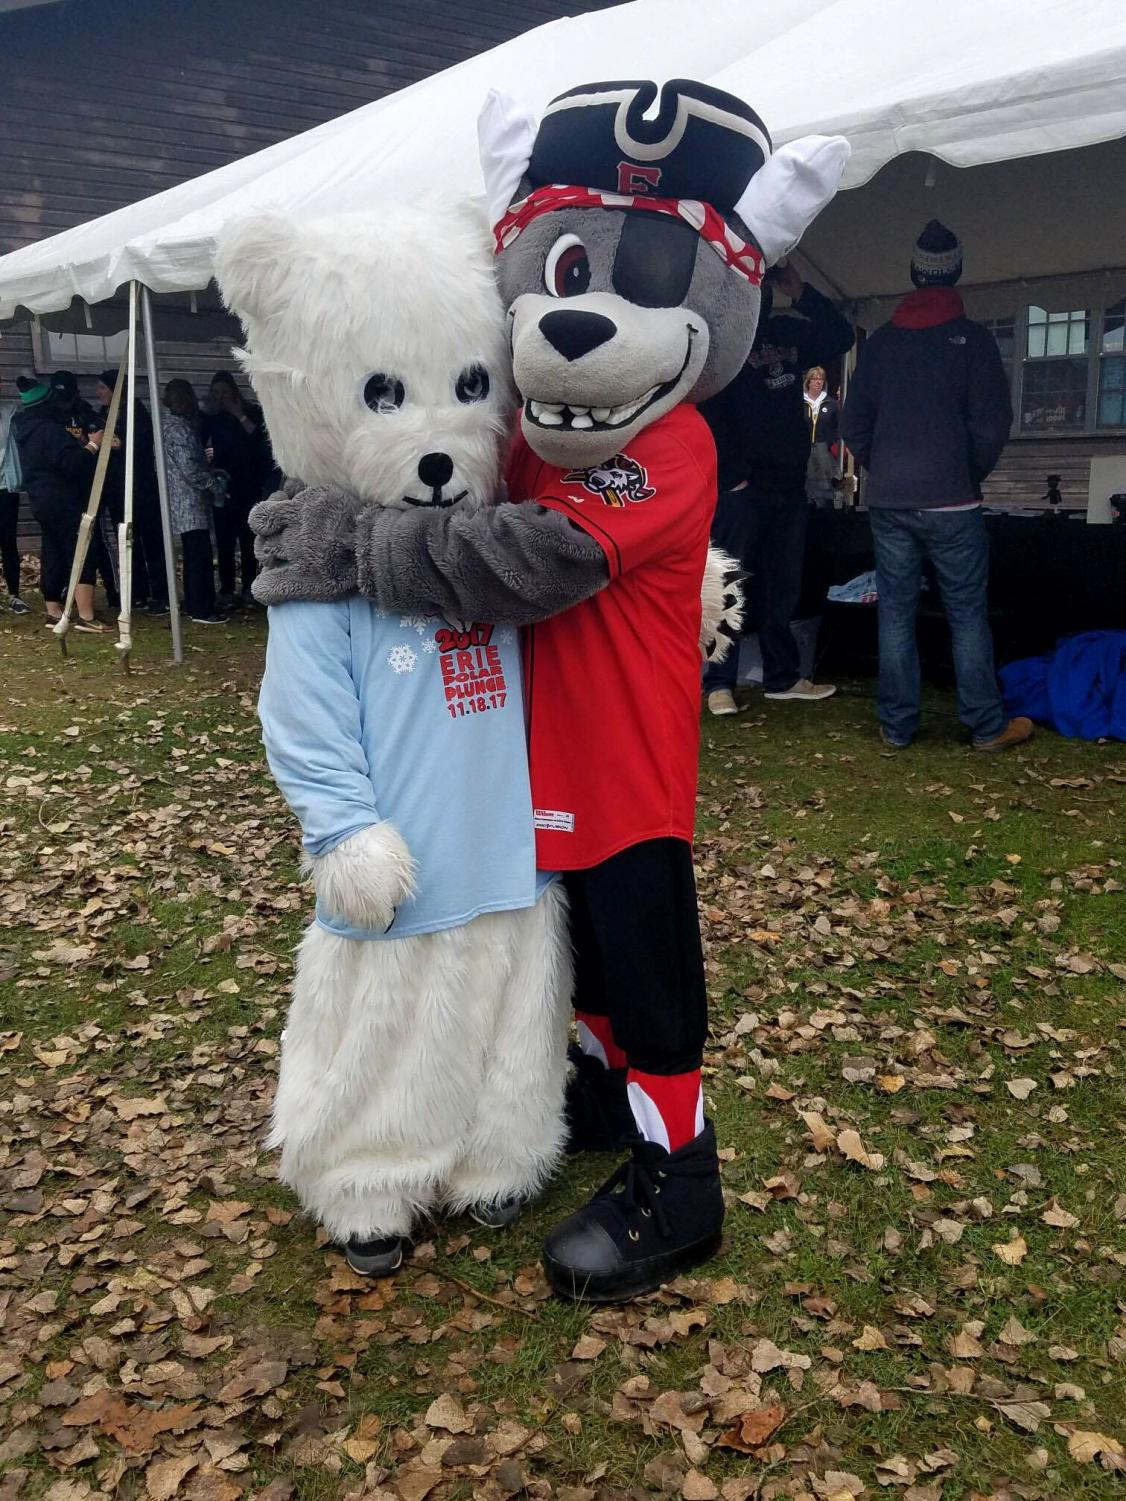 C. Wolf, the Erie SeaWolves' mascot, gives some love to the Polar Plunge mascot, Bernice, at this year's Erie Polar Plunge.